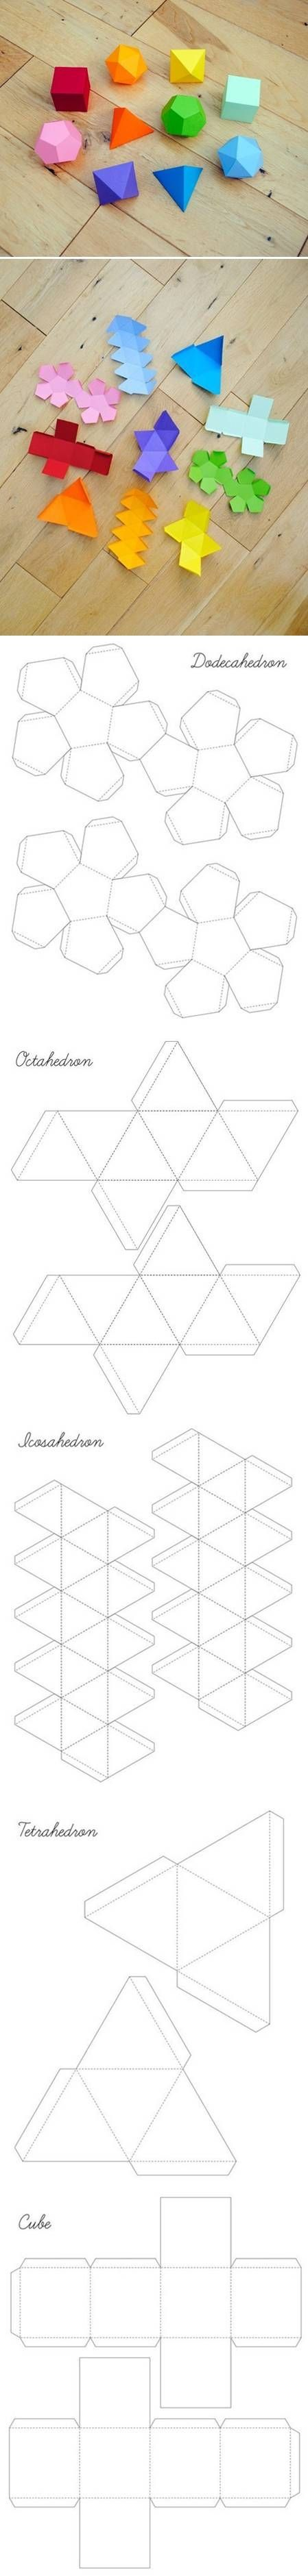 DIY Geometrical Box Templates DIY Geometrical Box Templates by diyforever